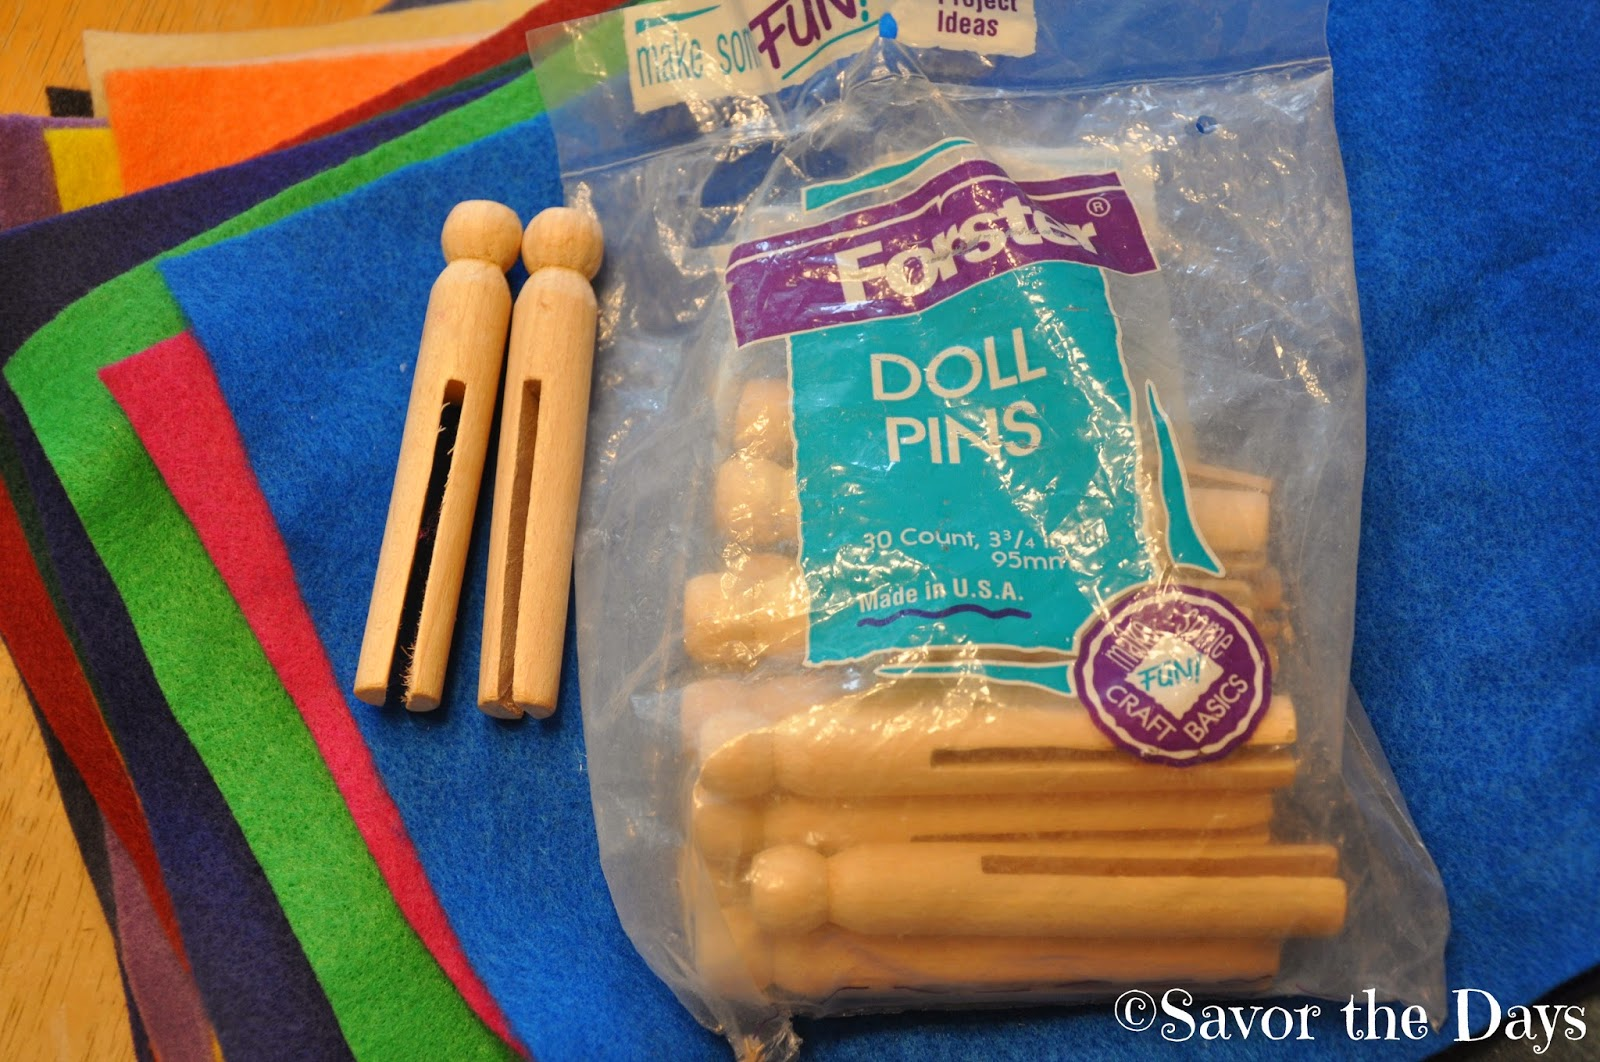 Craft supplies: Doll pins and felt